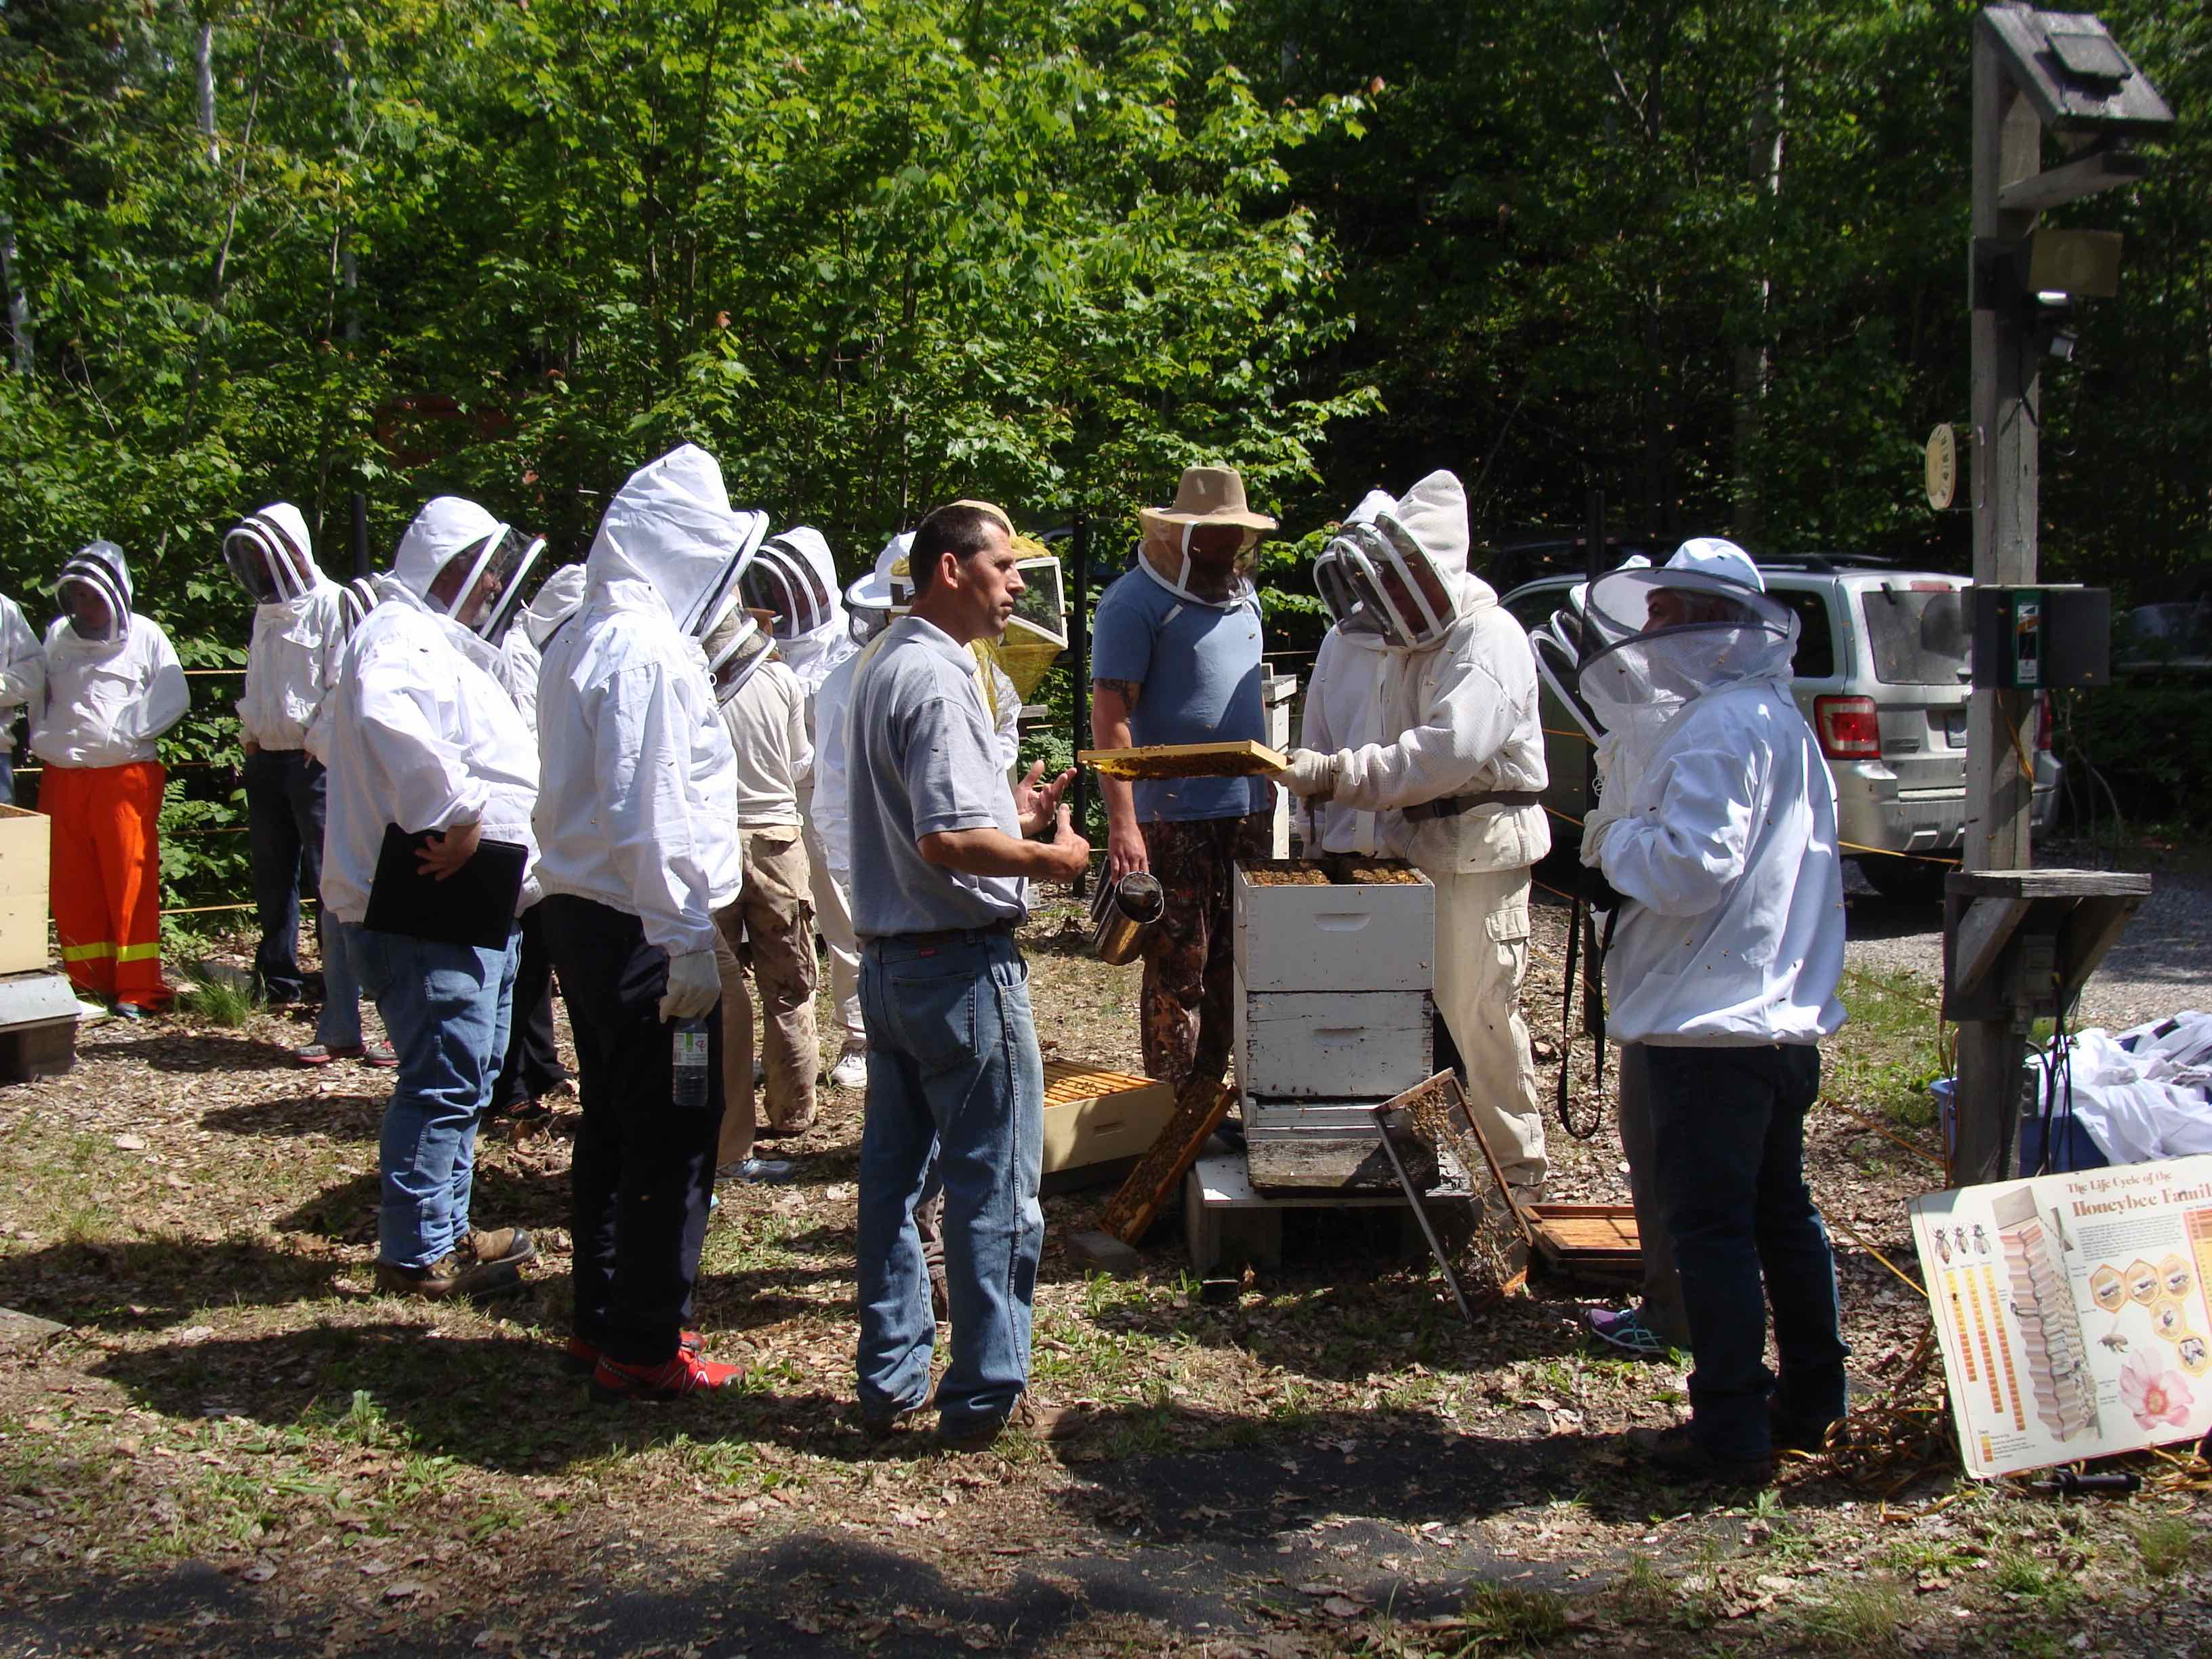 a swarm of beekeepers